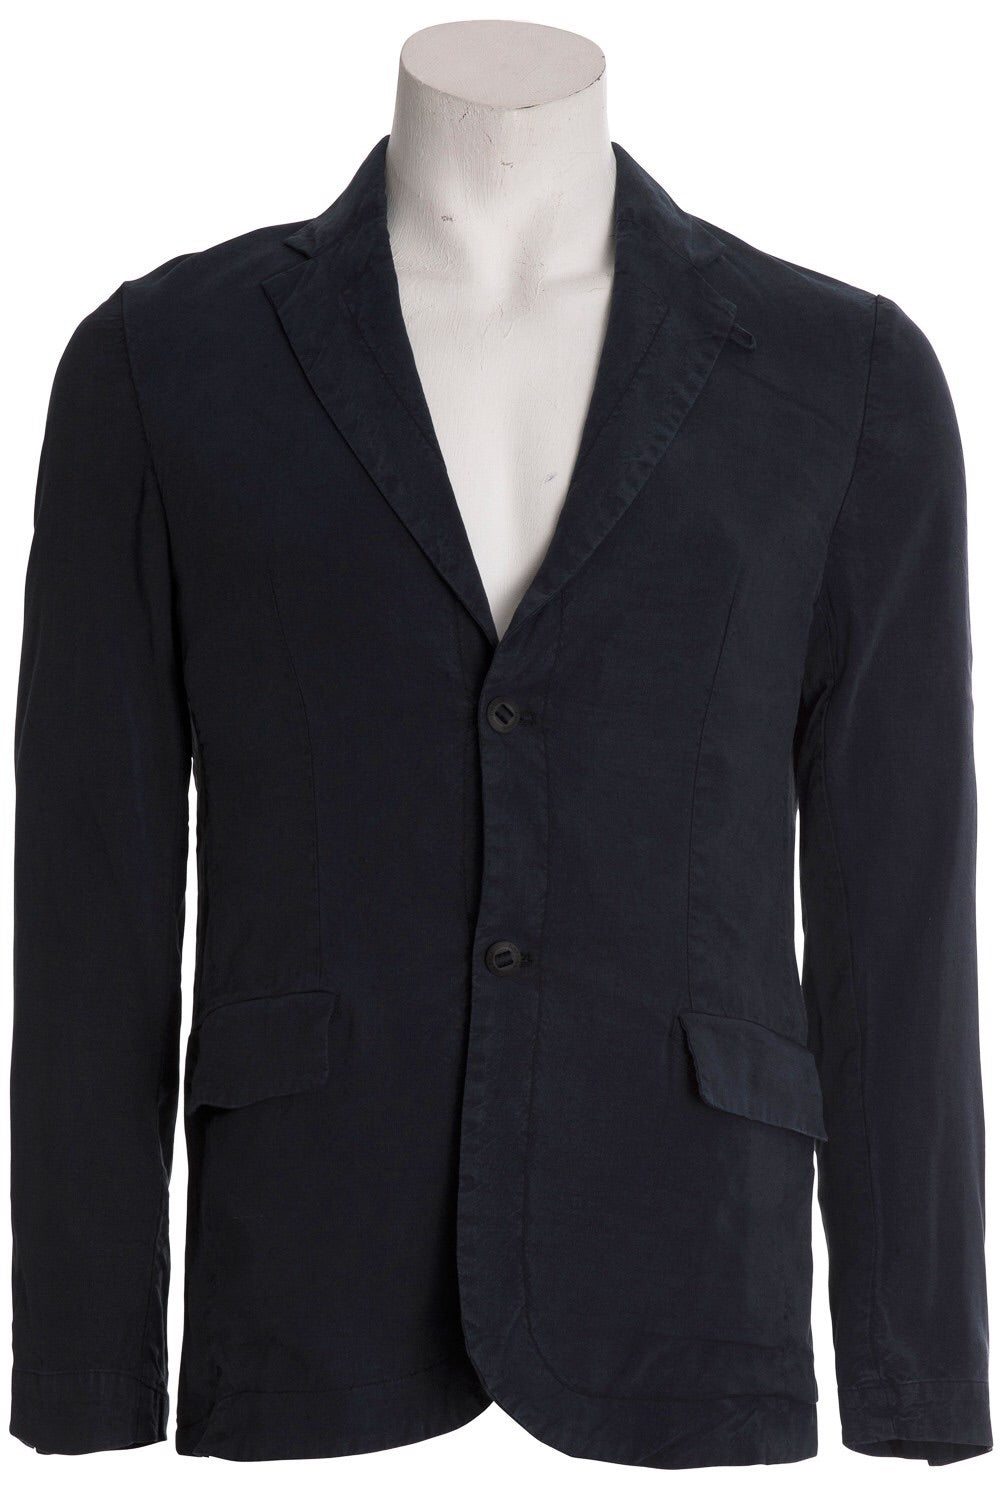 Hannes Roether Linen / Silk Sports Jacket